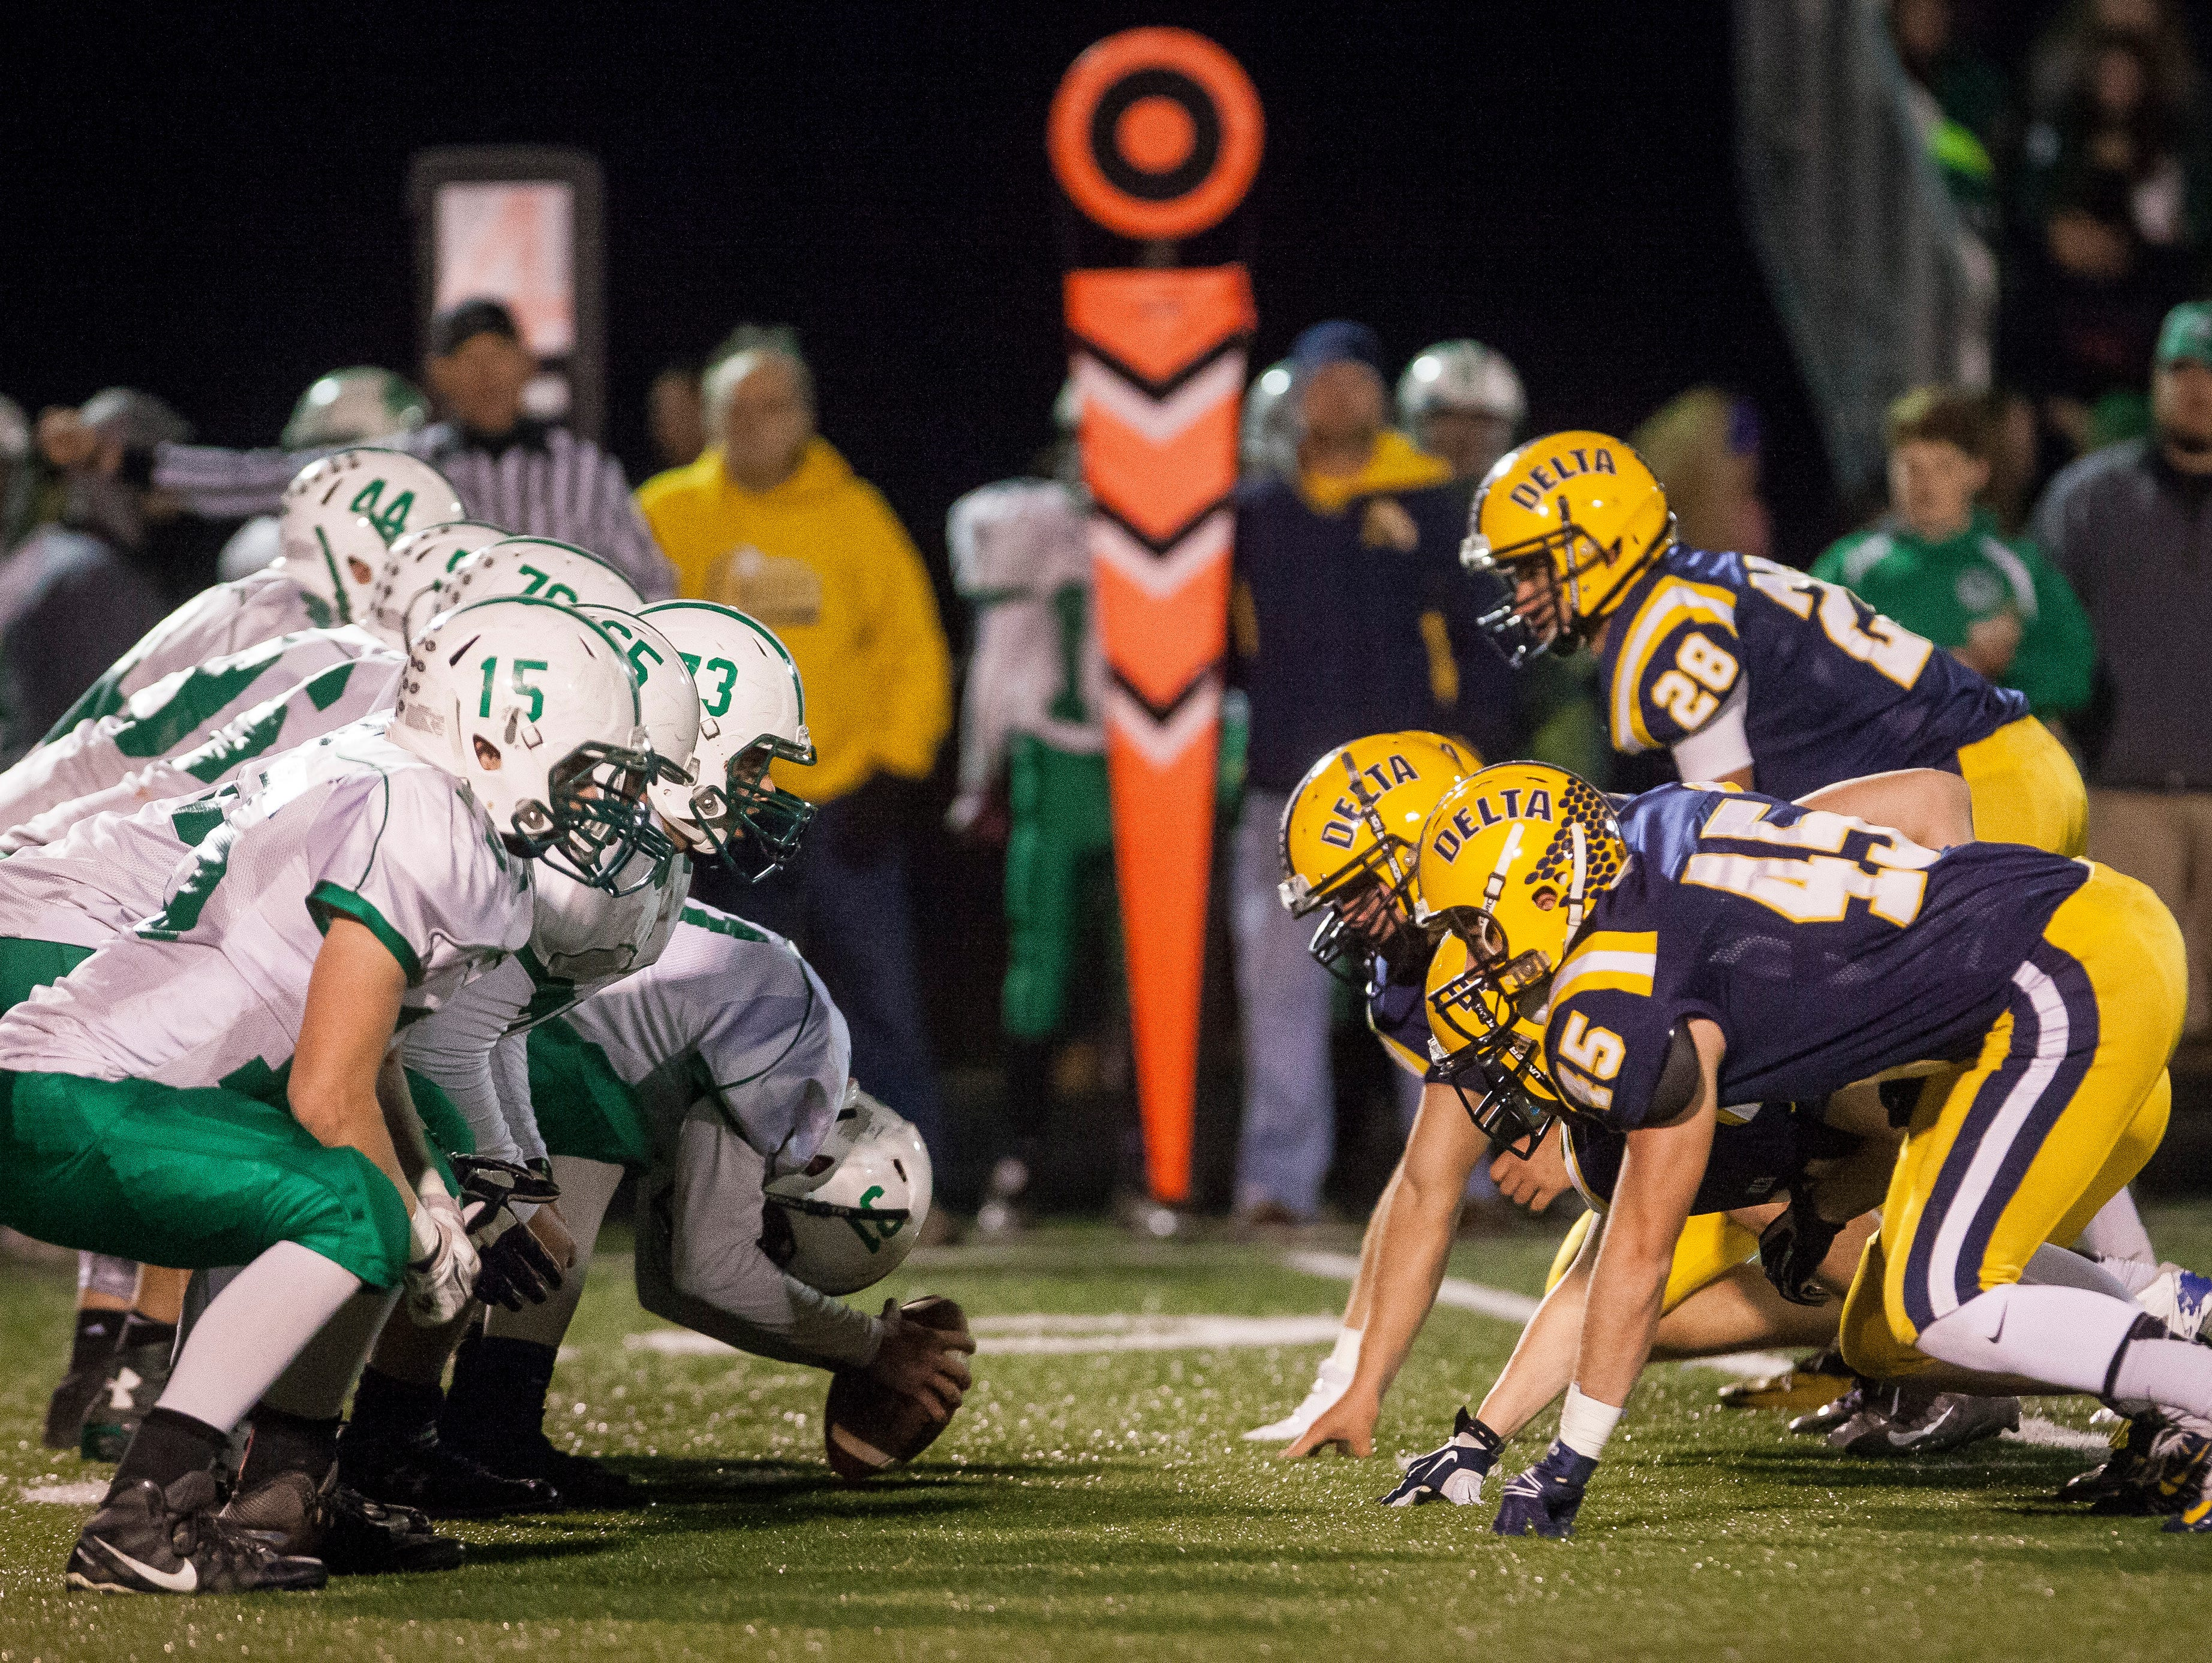 Delta's defense squares off against New Castle's offensive line Friday night at Delta. Delta won 49-7.